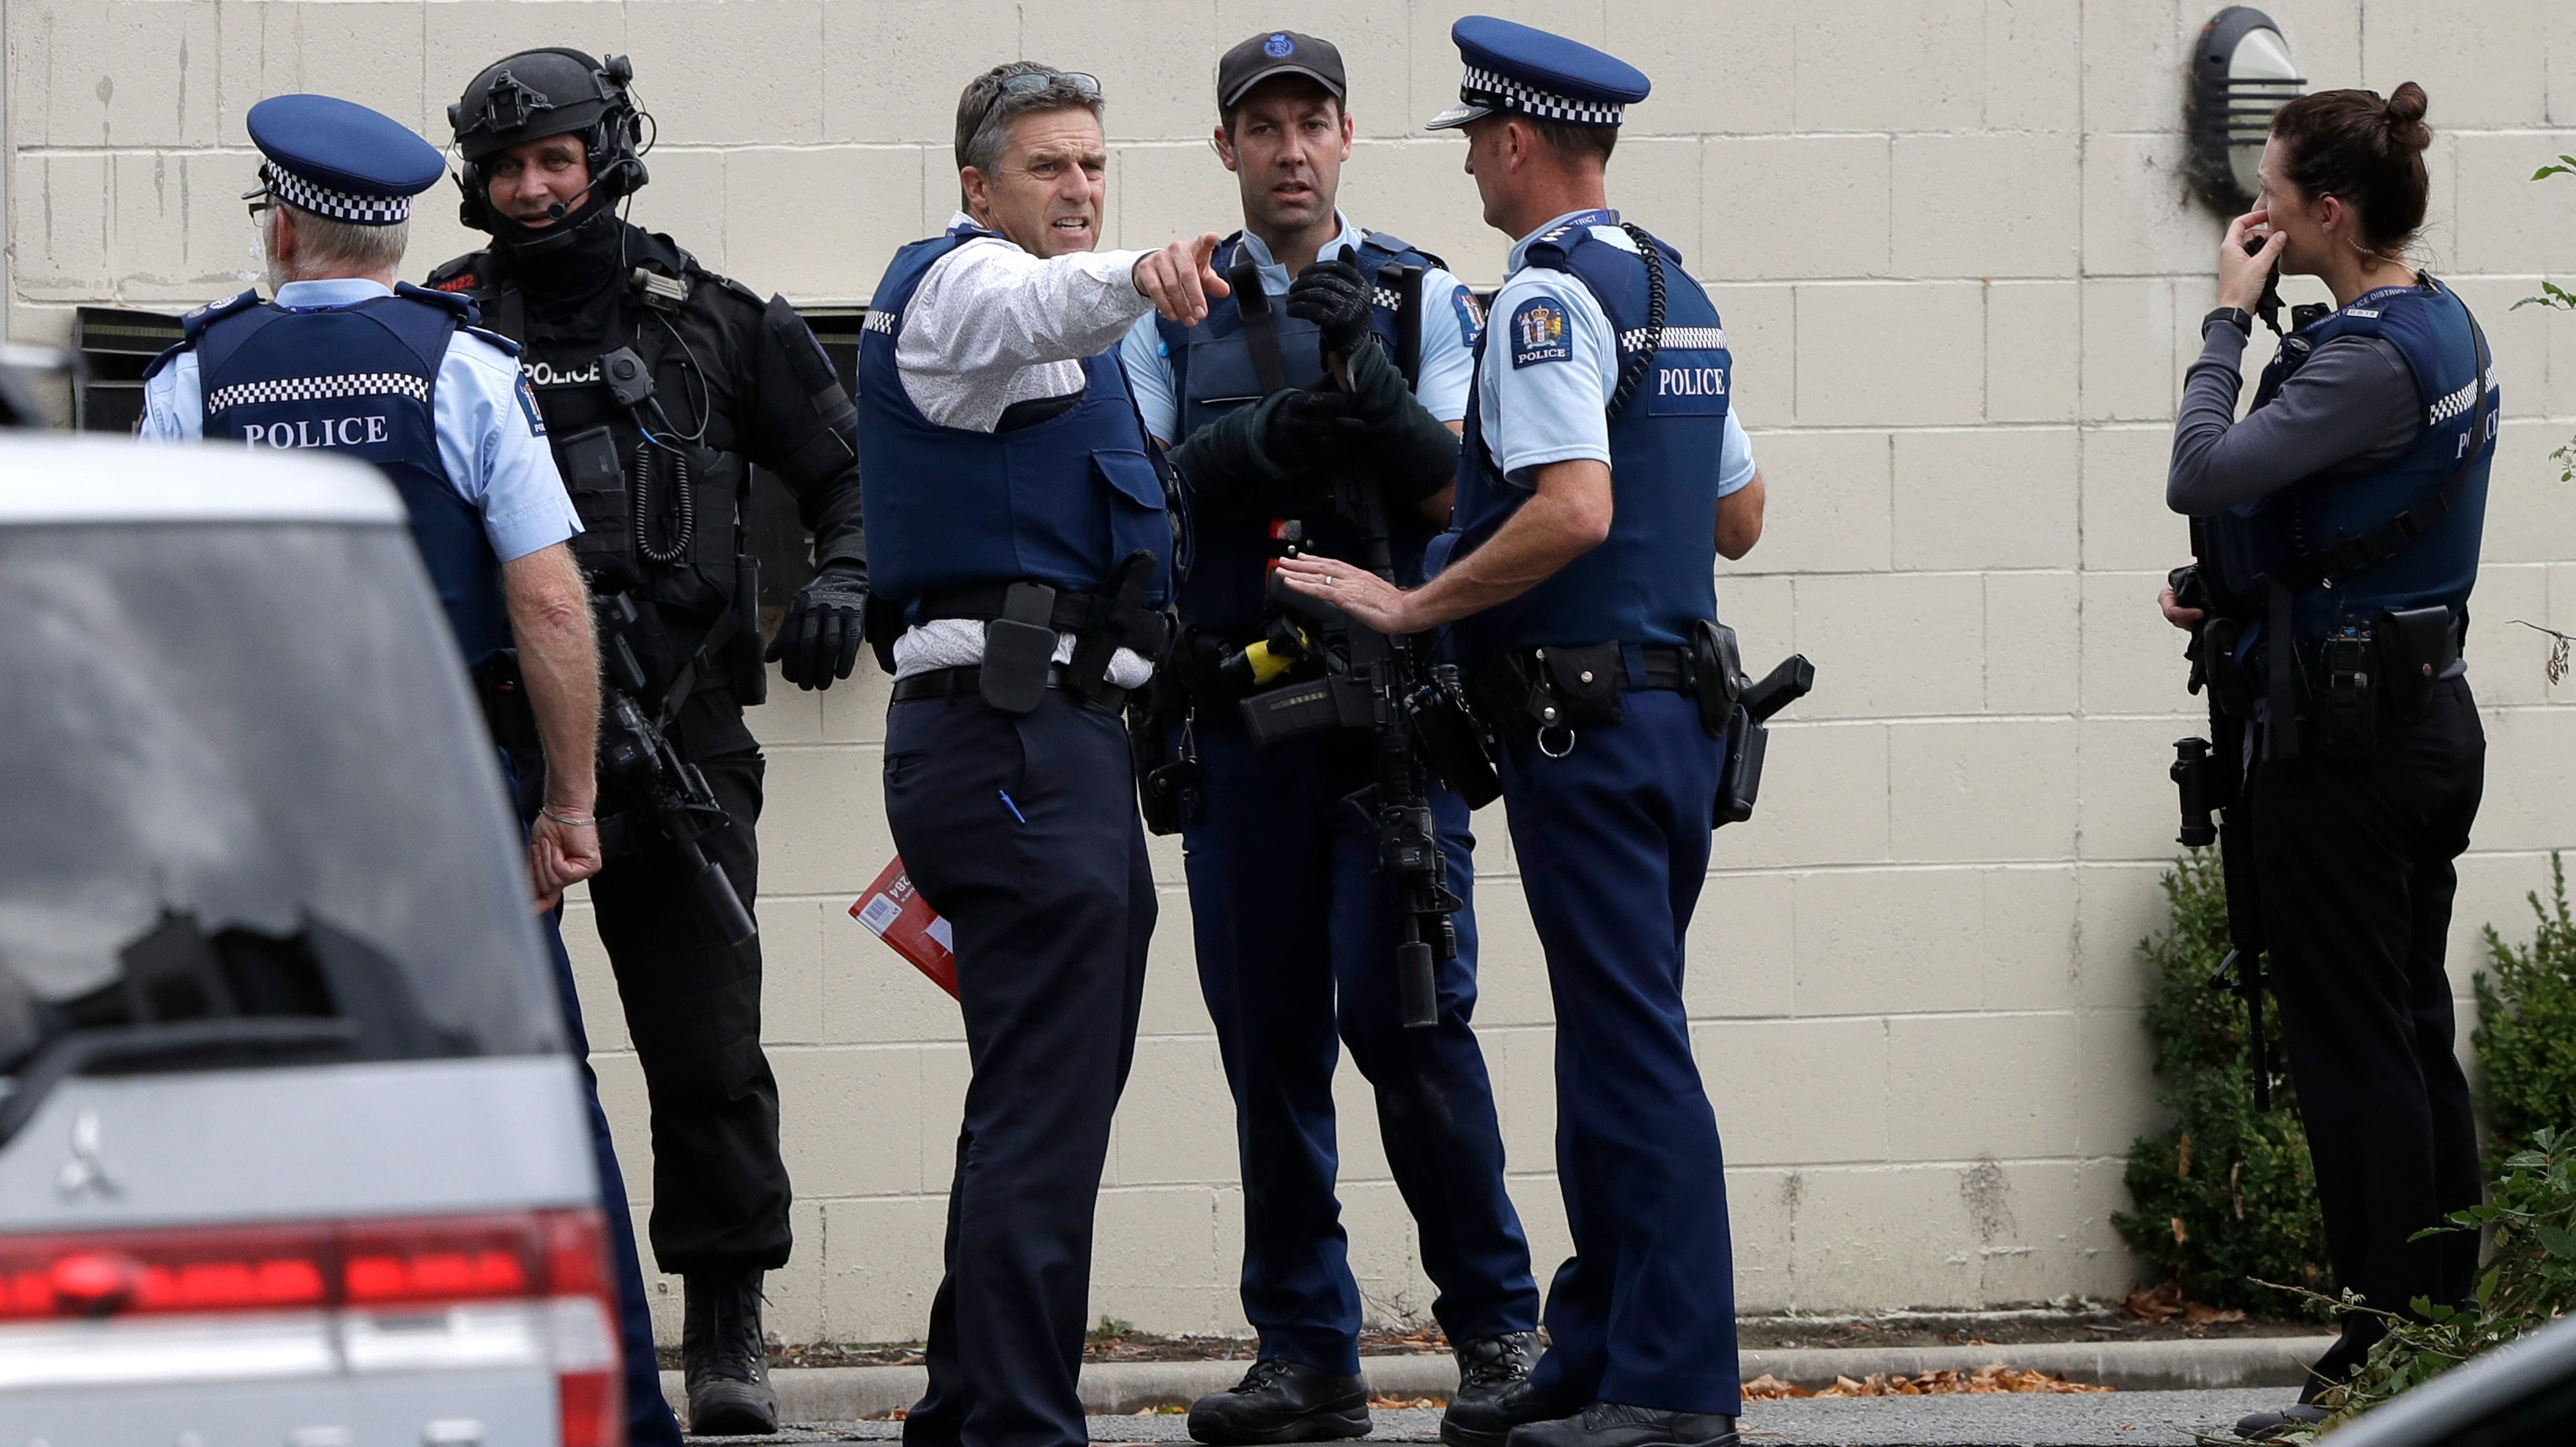 New Zealand Just filed Its First-ever Terrorism Charges Against the Christchurch Mosque Shooter